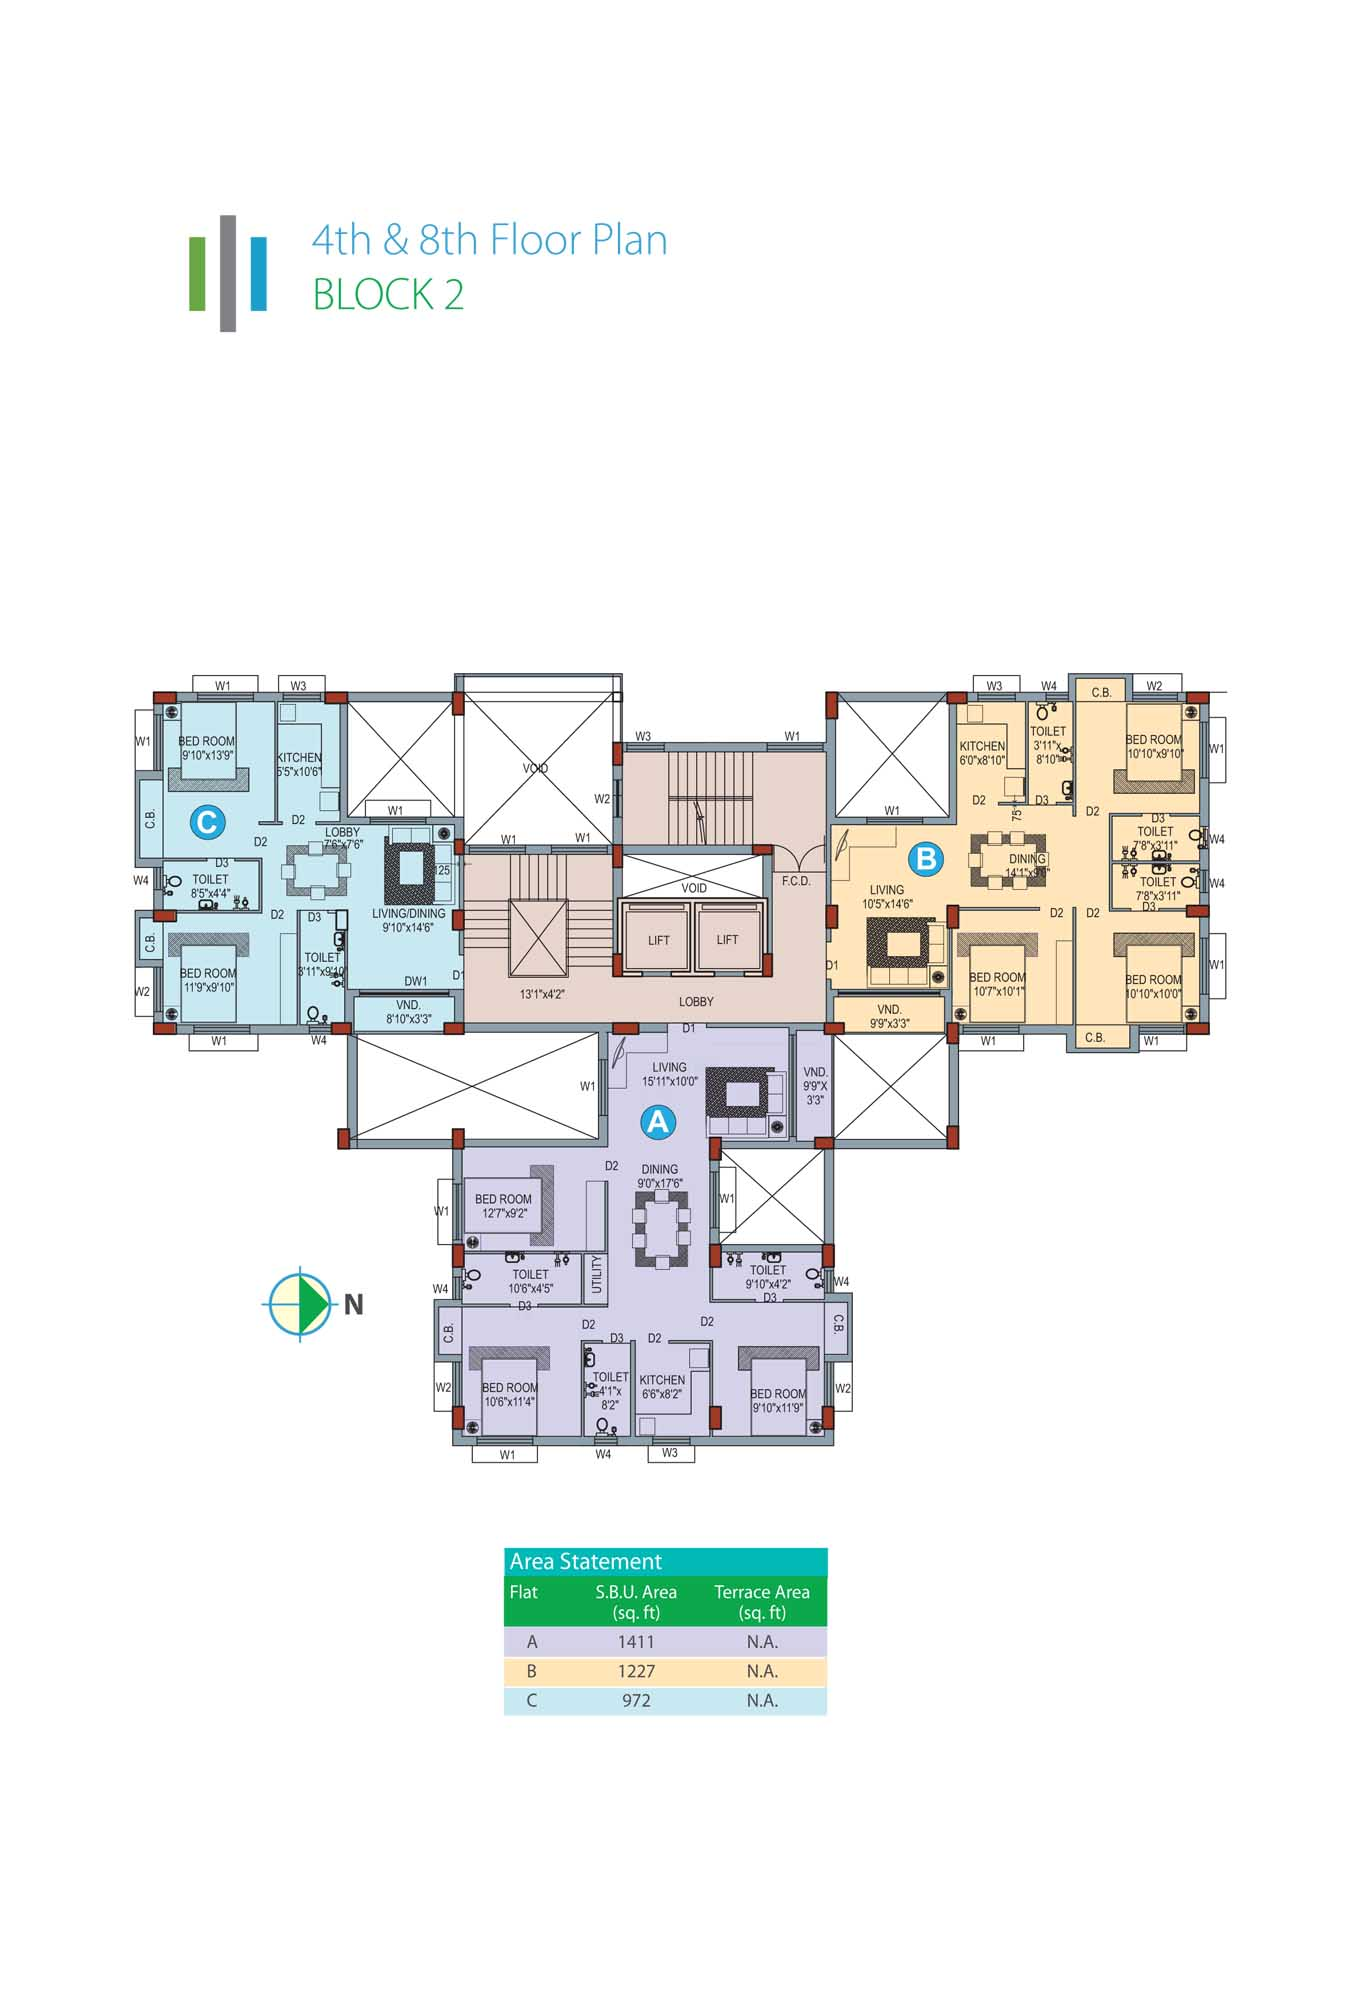 Eden Sky Terraces - Block 2 4th & 8th Floor Plan